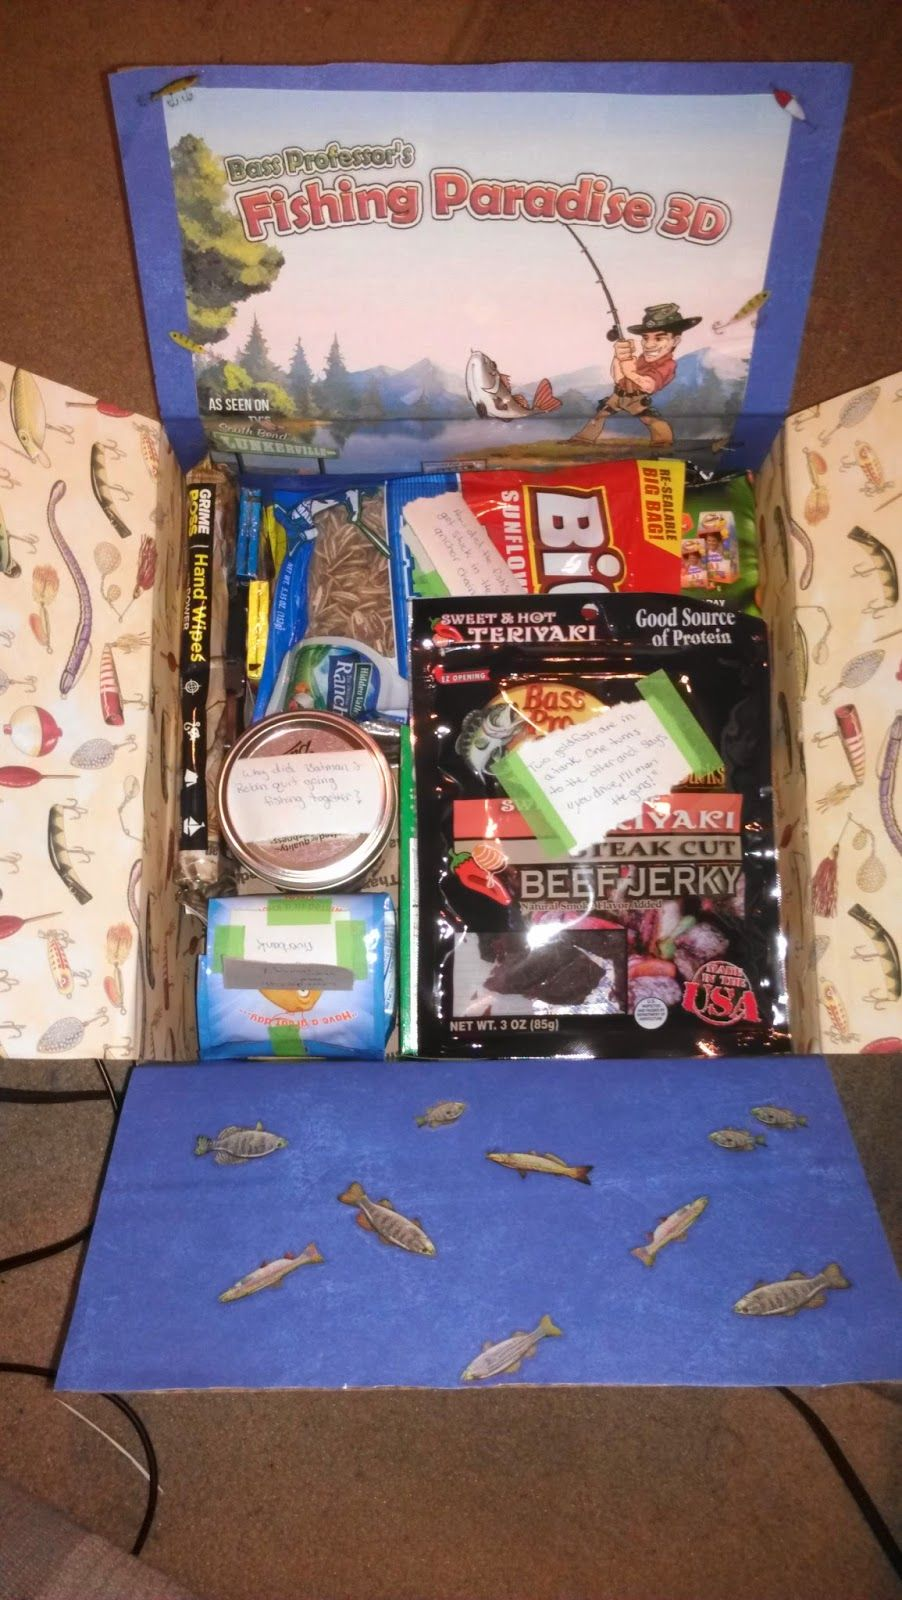 All For My Sailor: Care Package #3 - Fishing Paradise